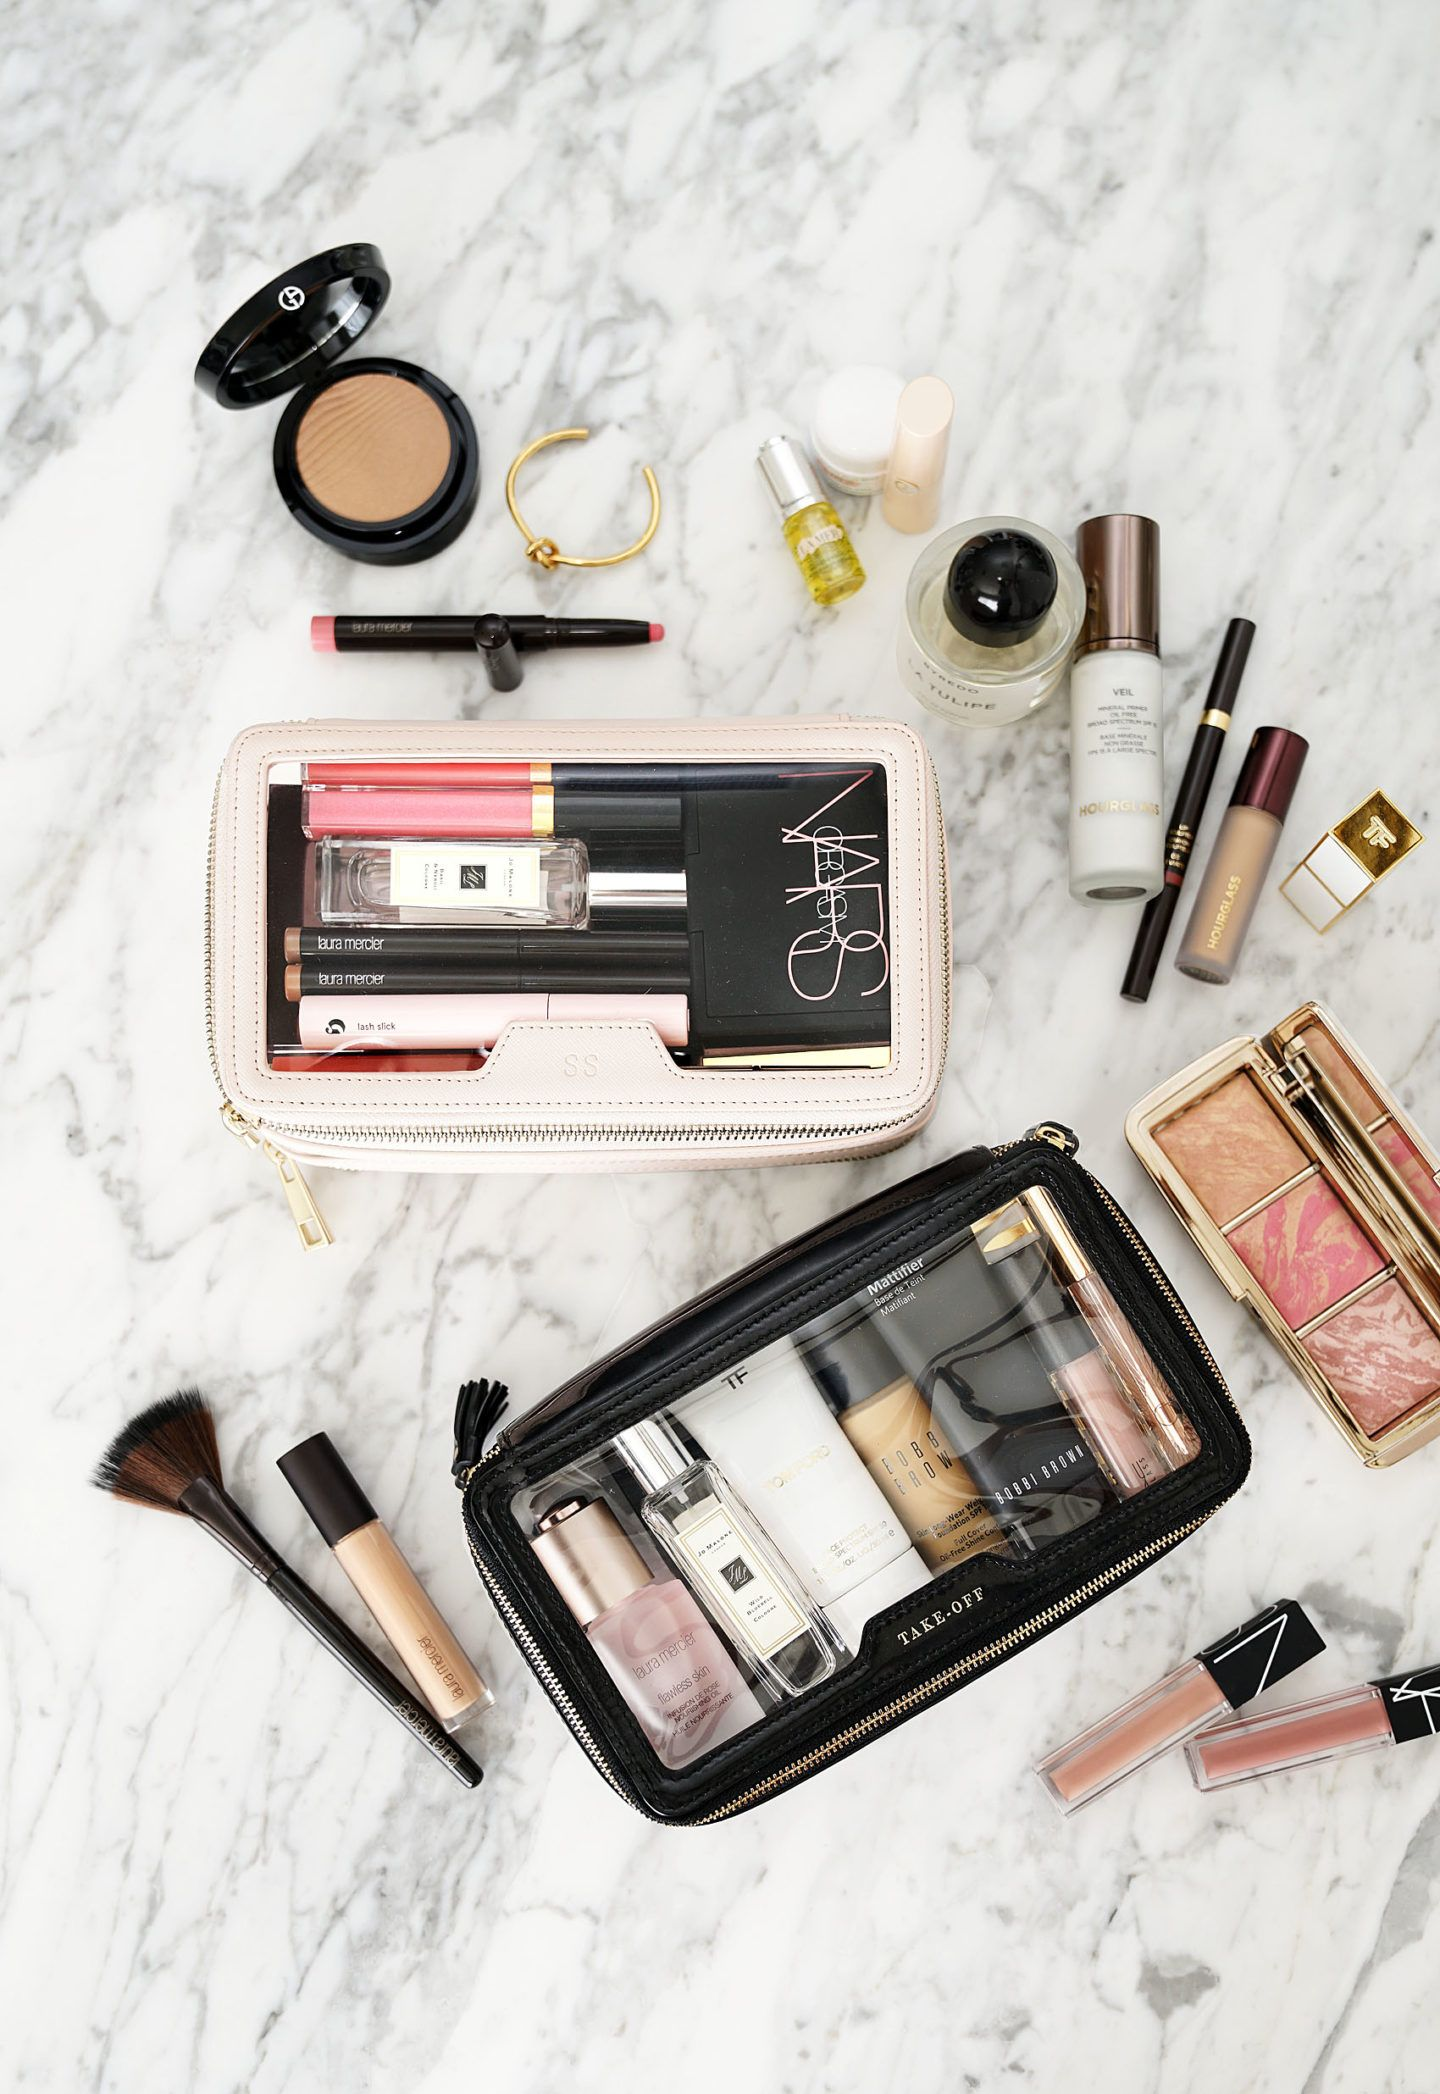 d15c4abddea9 The Daily Edited Transparent Cosmetic Case vs Anya Hindmarch Inflight  Travel Case | The Beauty Look Book